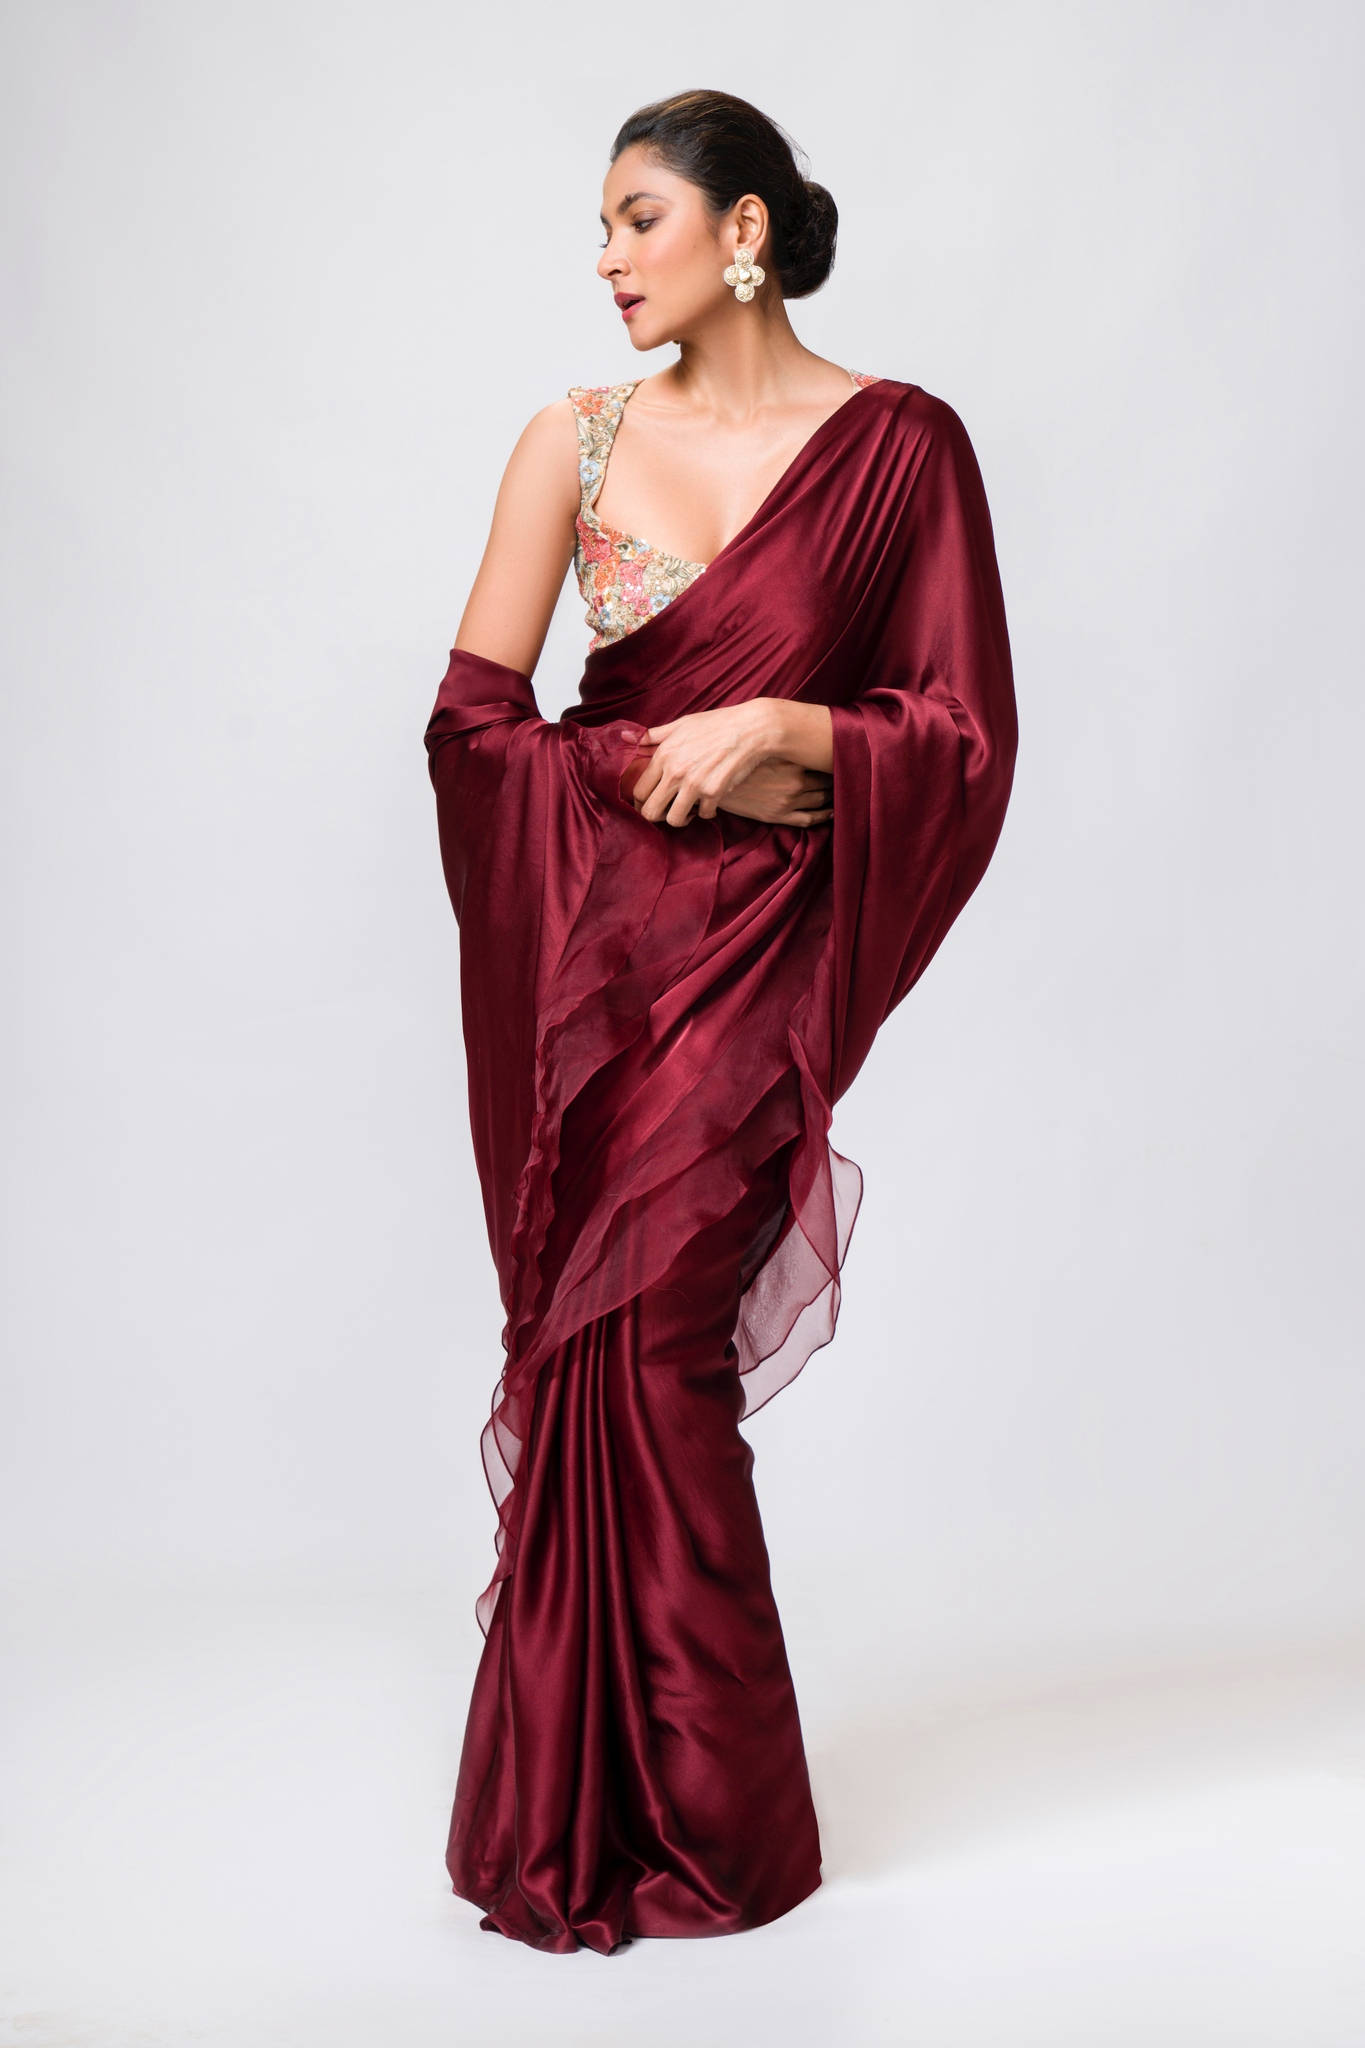 A whimsical wine hued satin sari hemmed with ruffled organza.  Kindly WhatsApp  on +91-9833520520 for more information. 2021-09-19